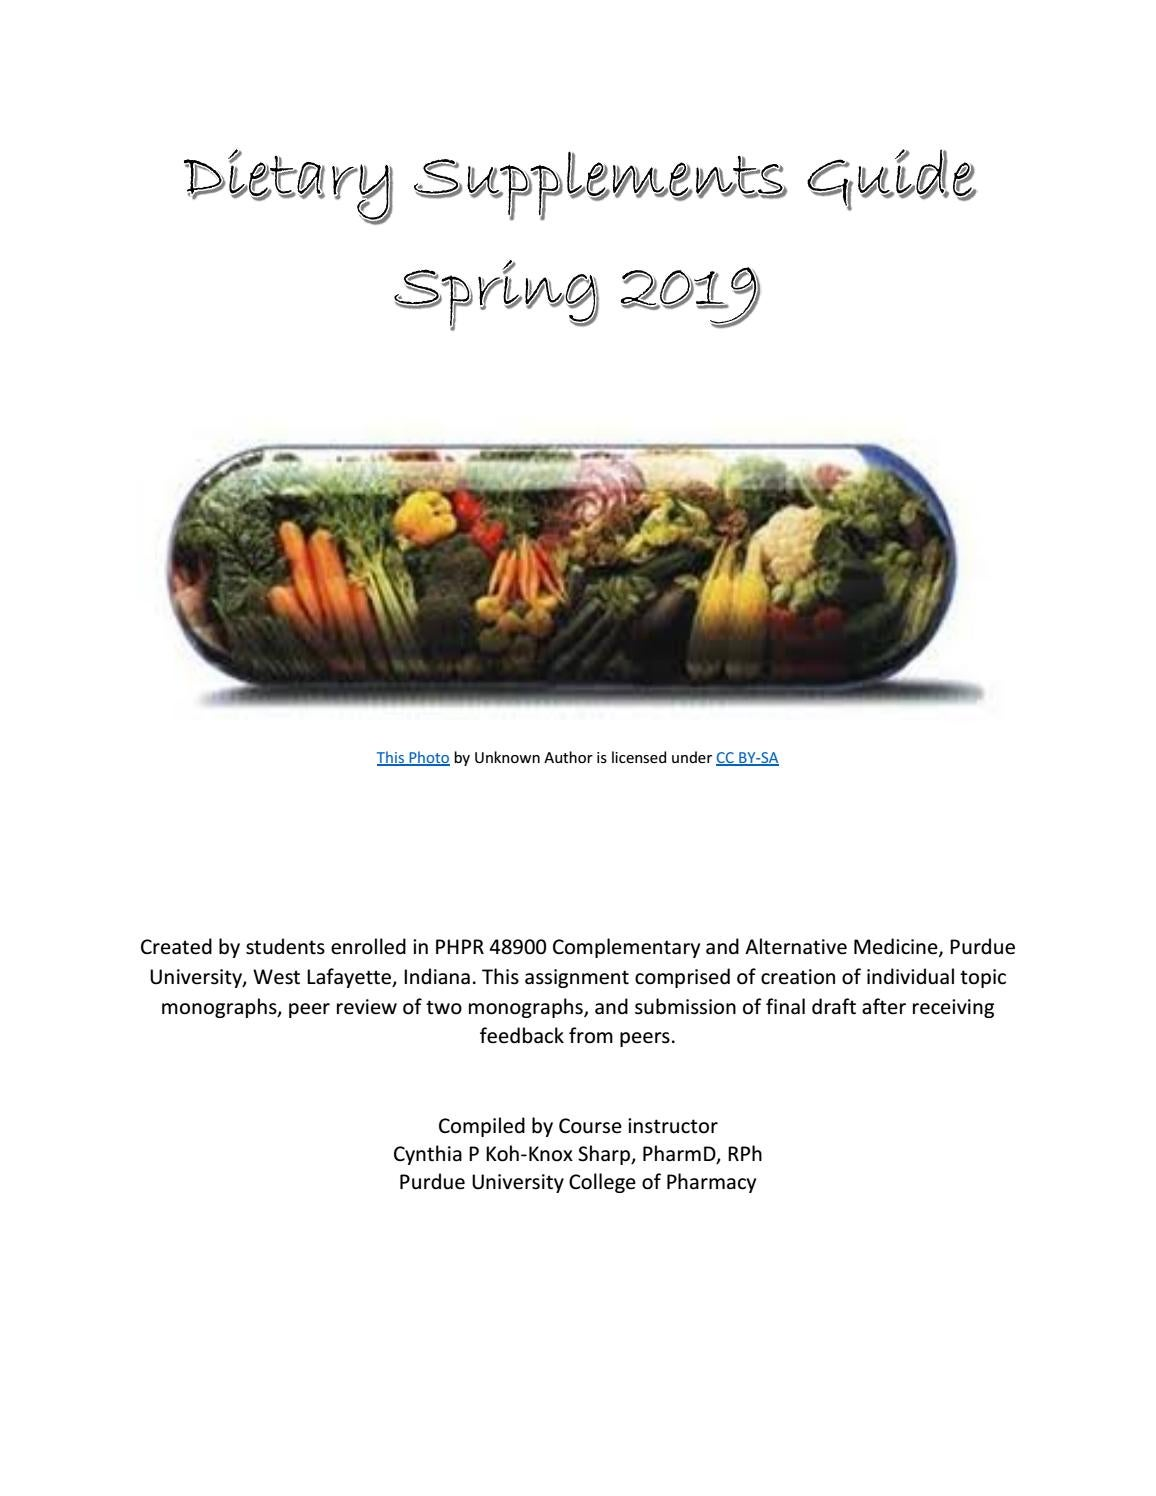 Dietary Supplement Guide Spring 2019 by ckohknox issuu